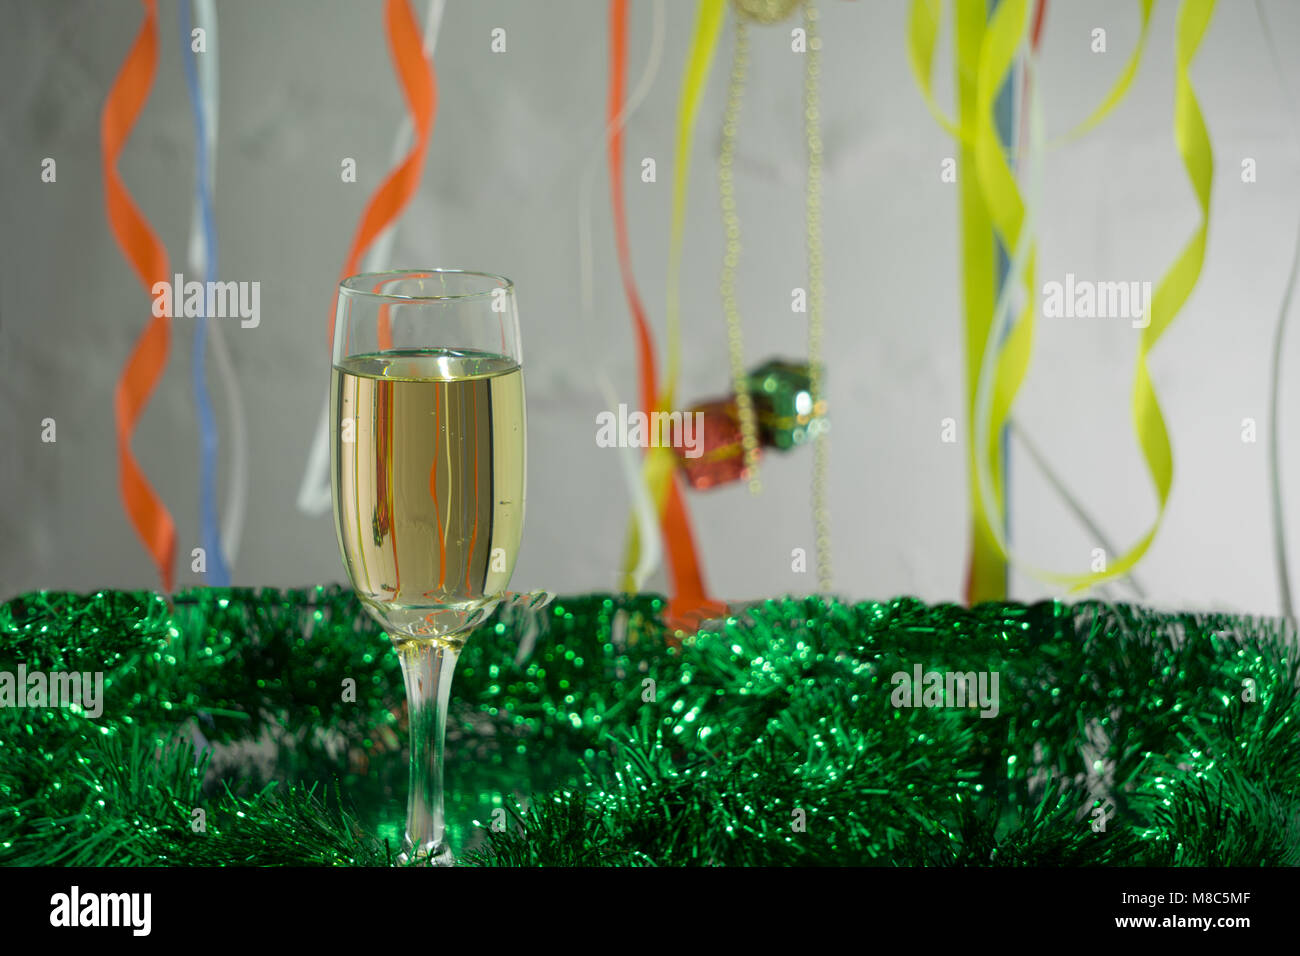 Red And Green Tinsel Stock Photos & Red And Green Tinsel Stock ...